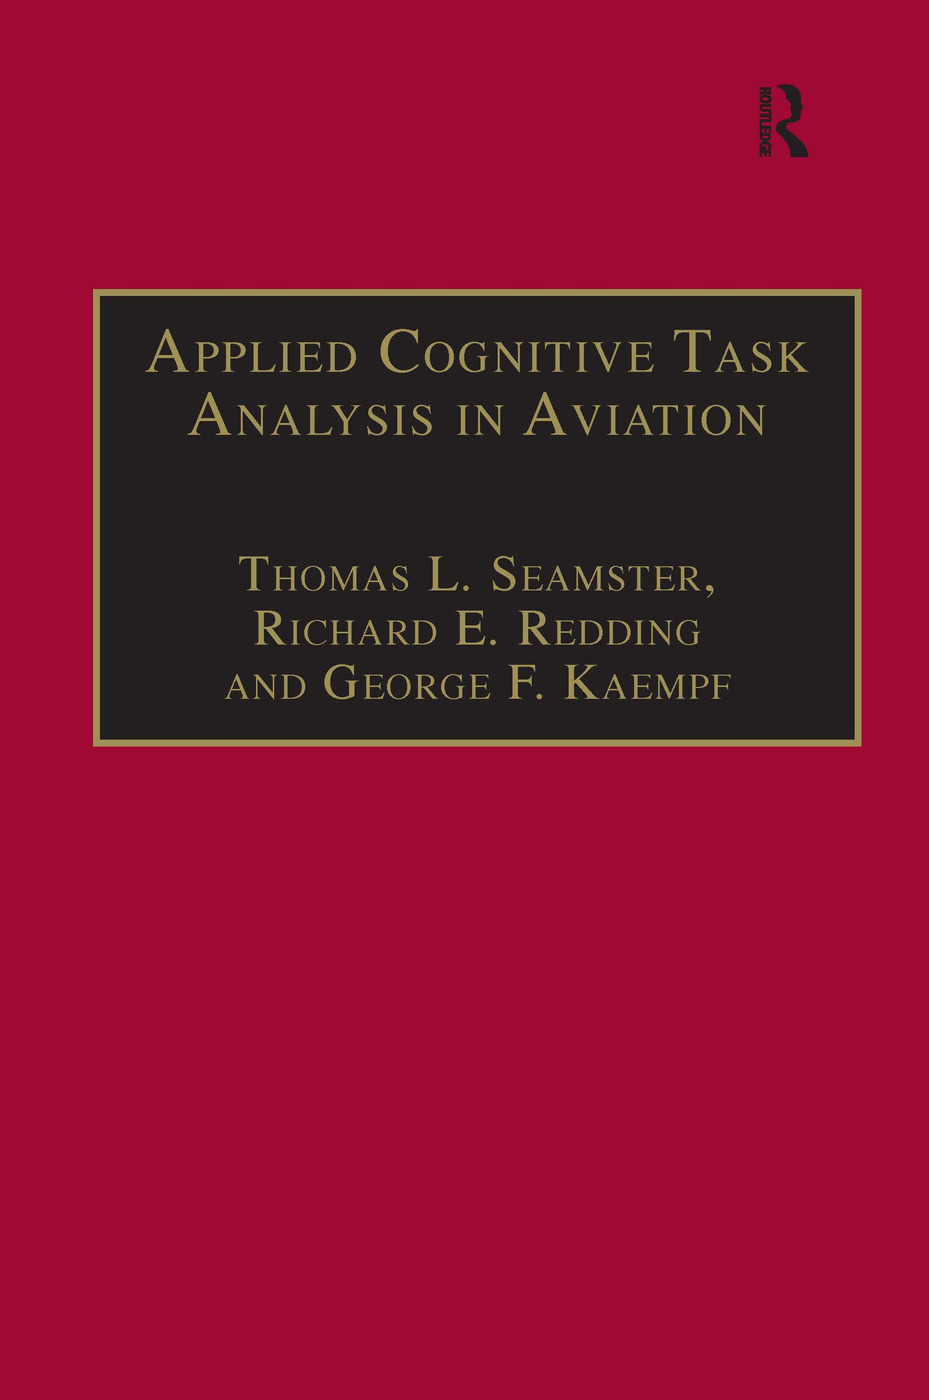 The cognitive task analysis report